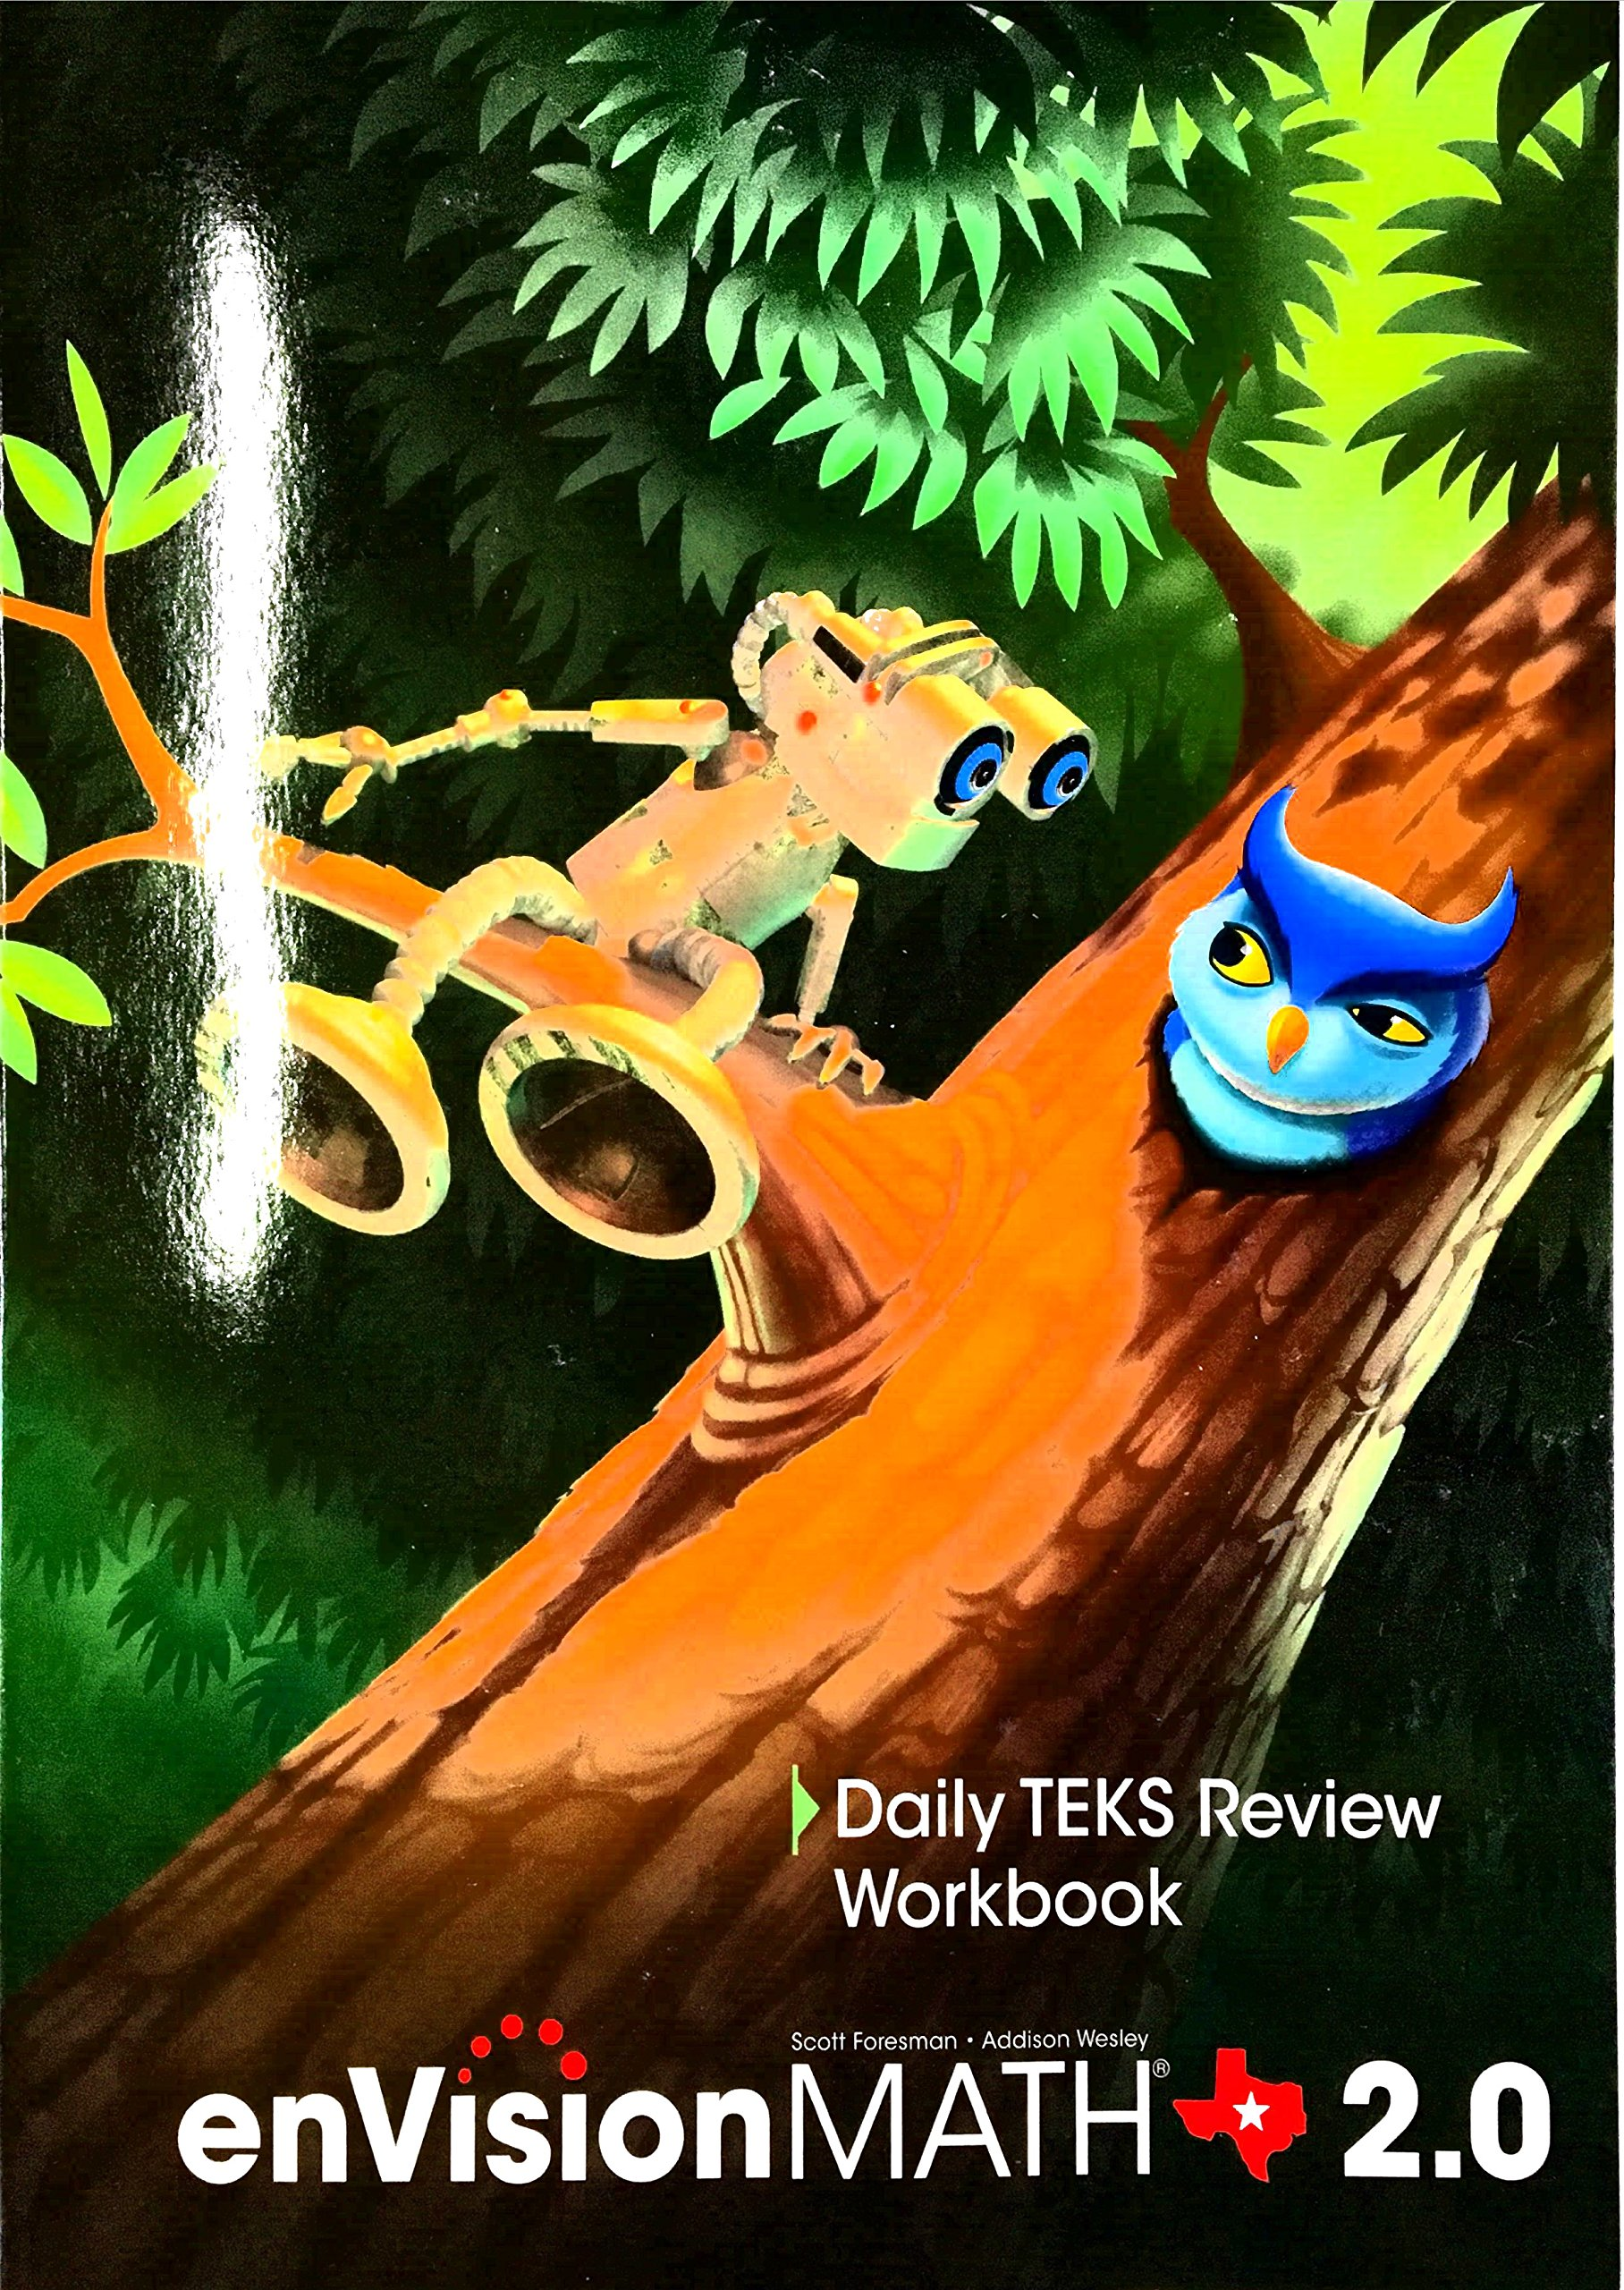 Read Online Texas - EnVision MATH 2.0 - Daily TEKS Review Workbook - Grade 1 PDF